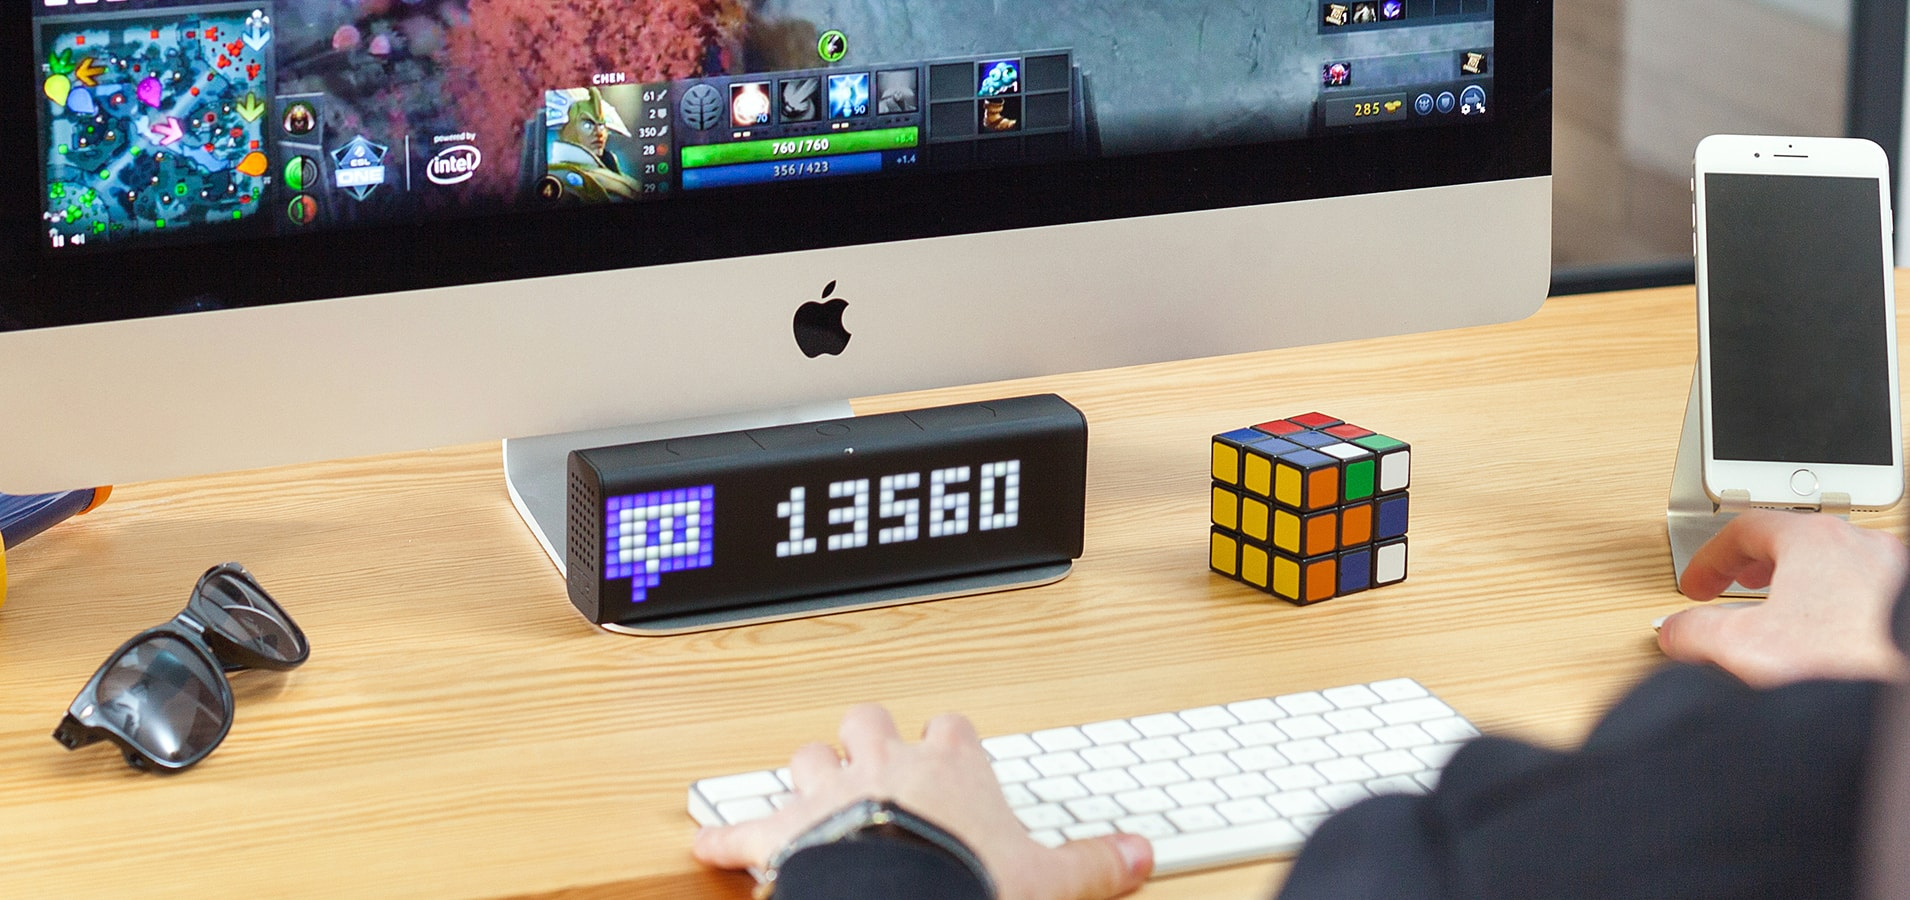 LaMetric Time smart clock complements the desk setup and displays number Mixer followers